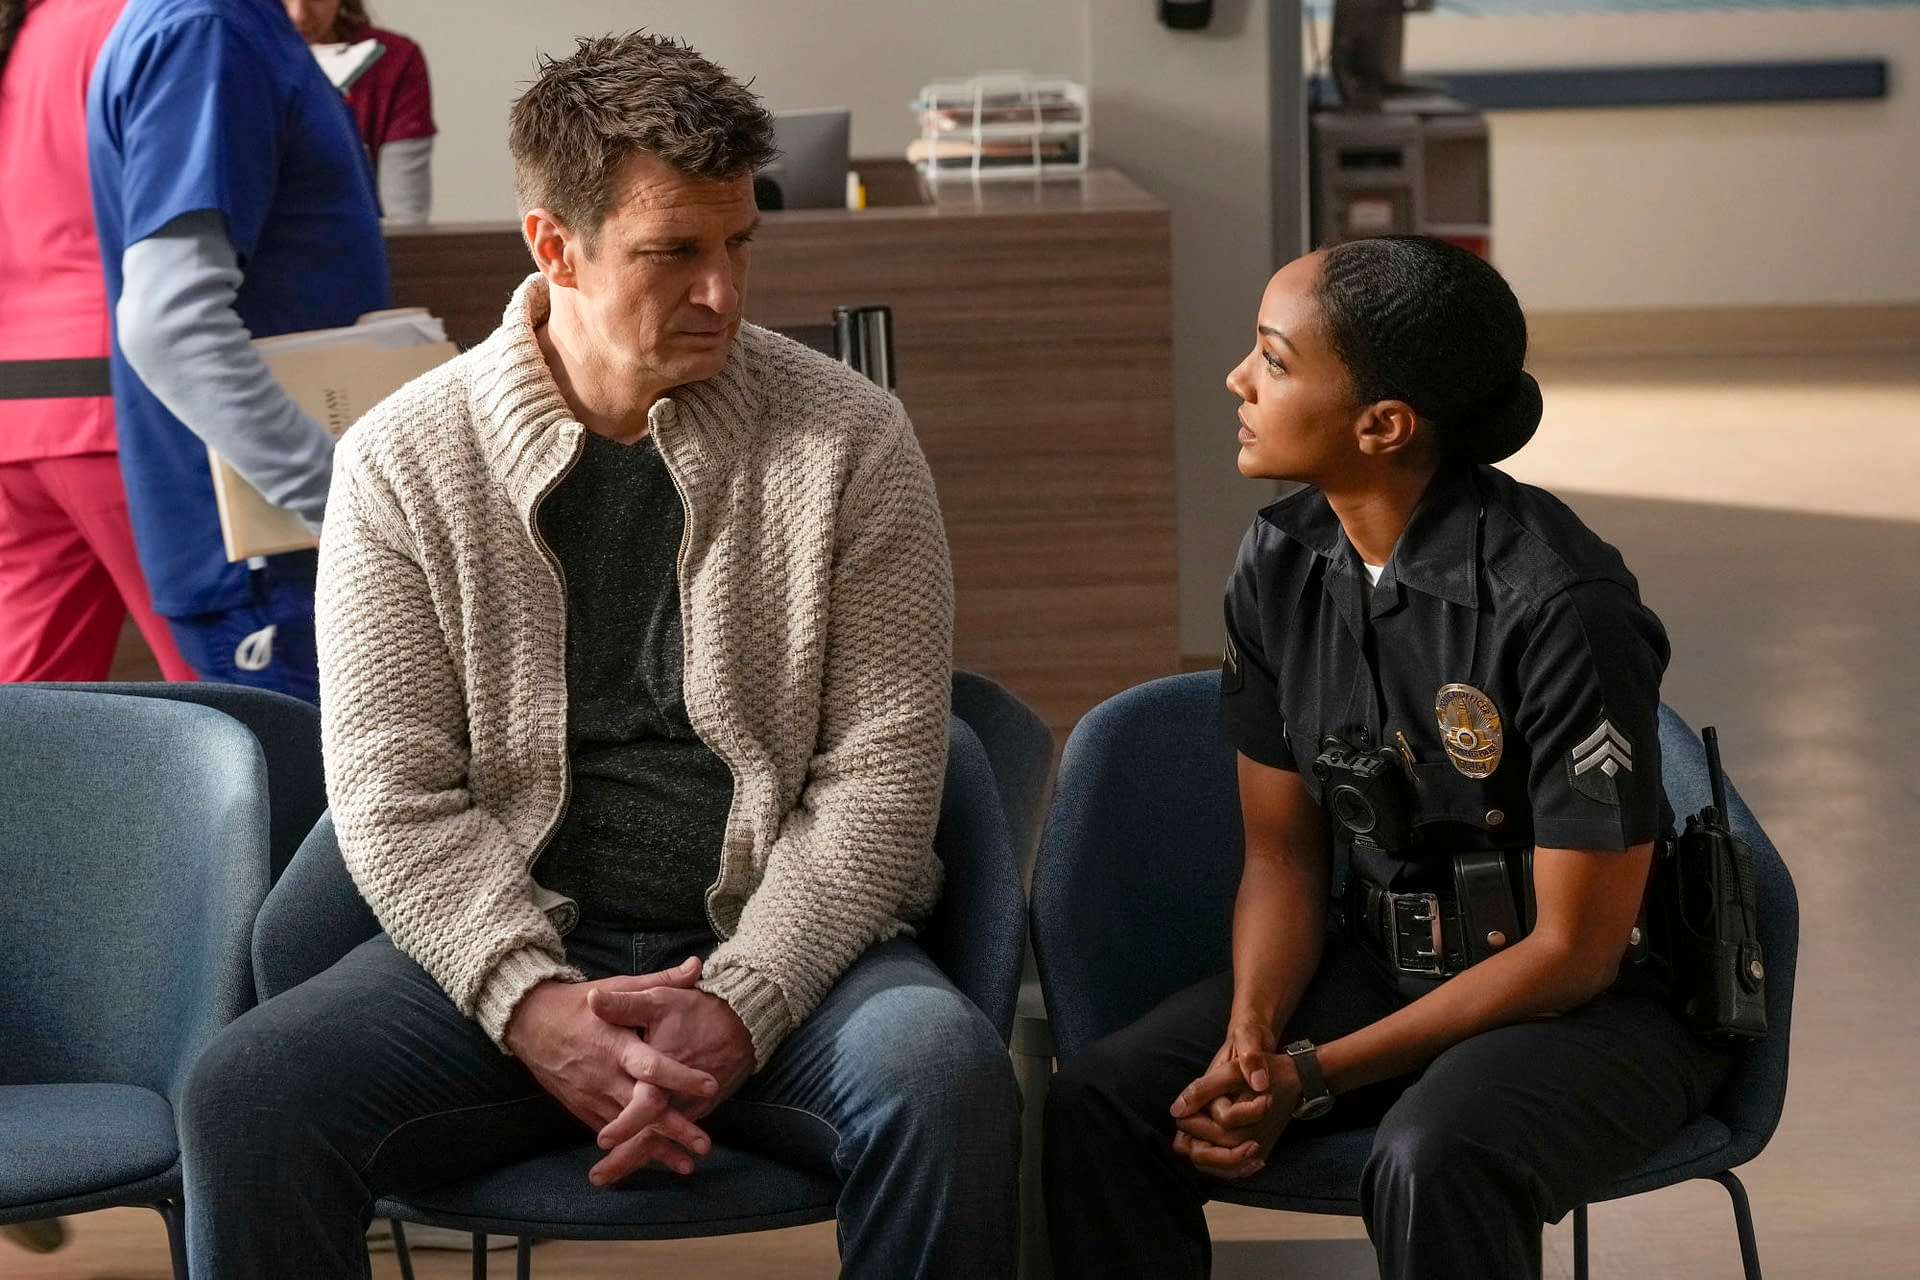 Dating michelle fillion chapman nathan 'The Rookie'